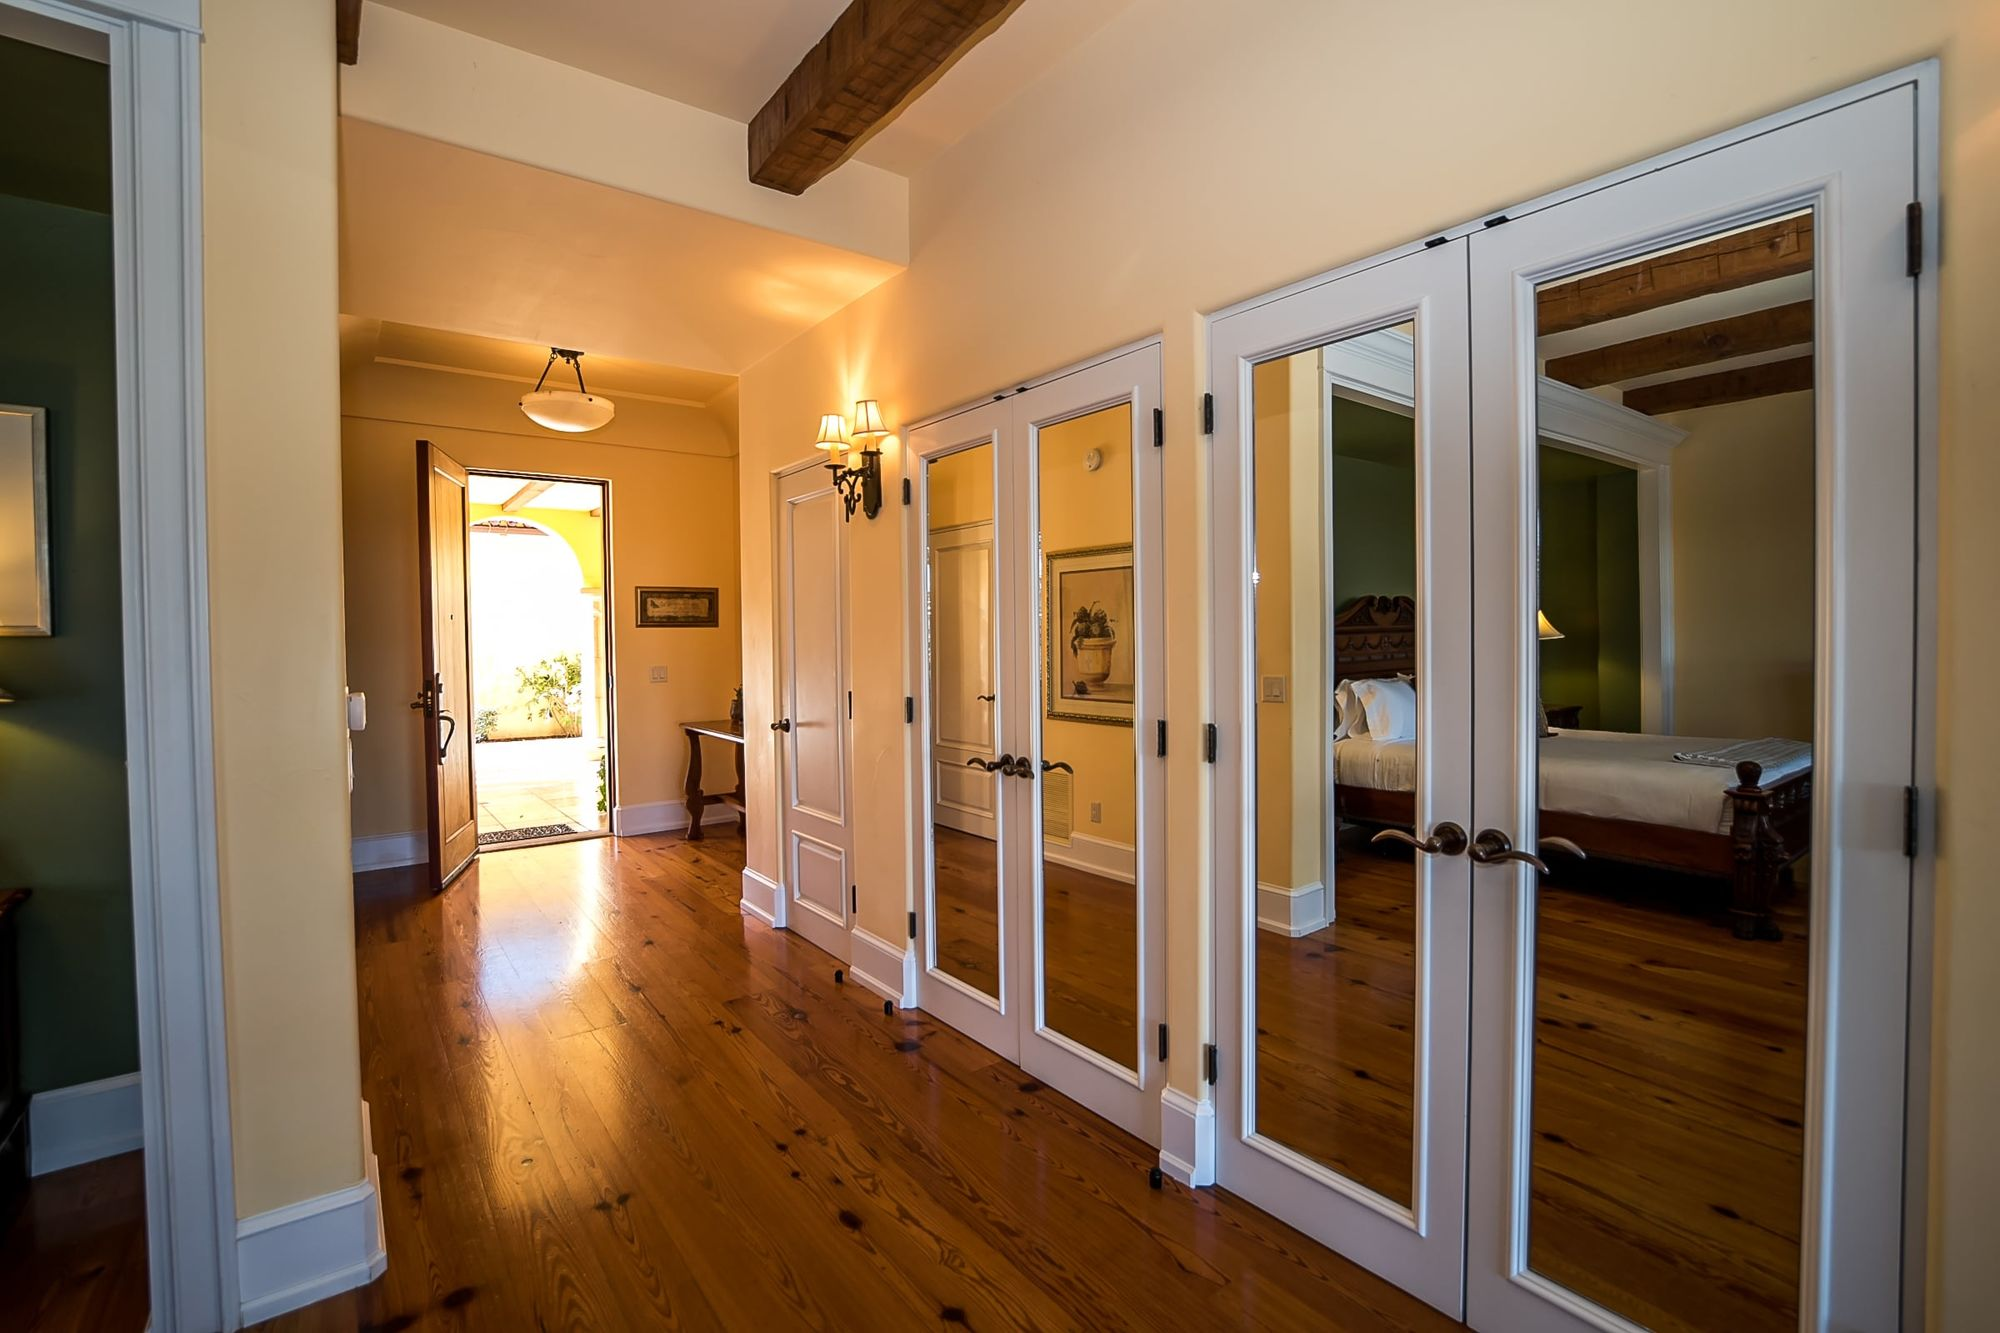 Hallway with doors inset with mirrors